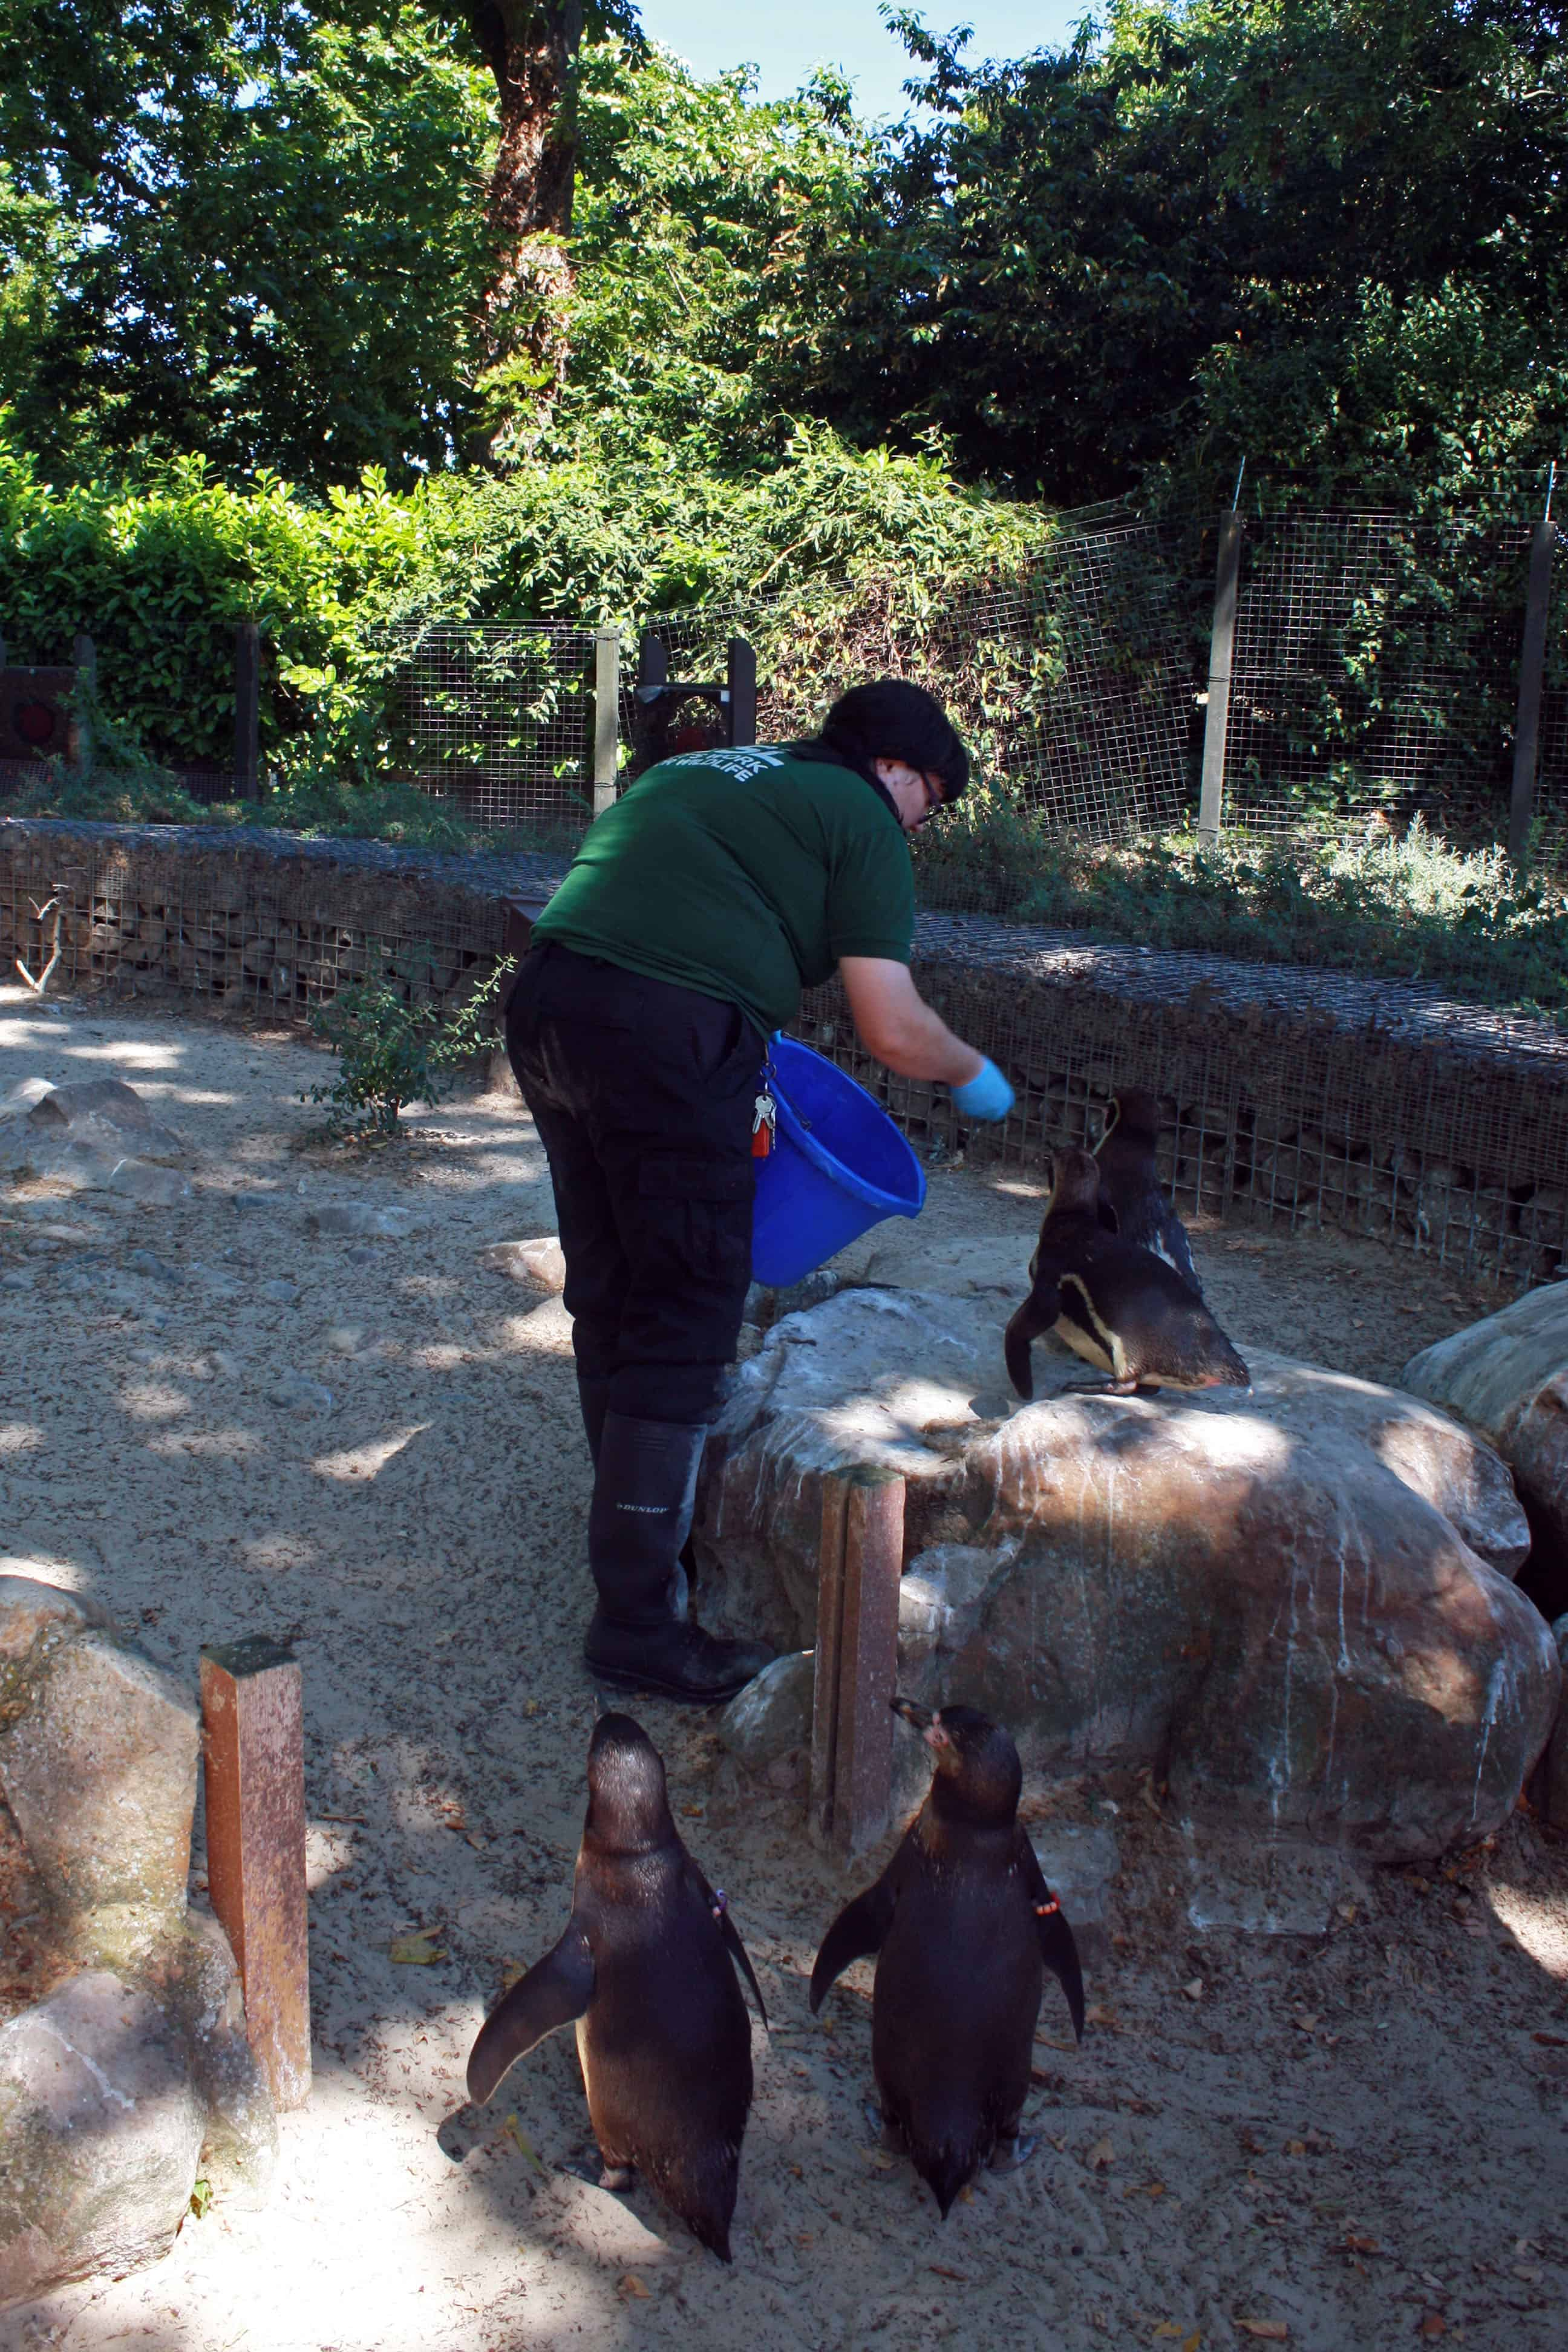 Feeding penguins at ZSL London Zoo